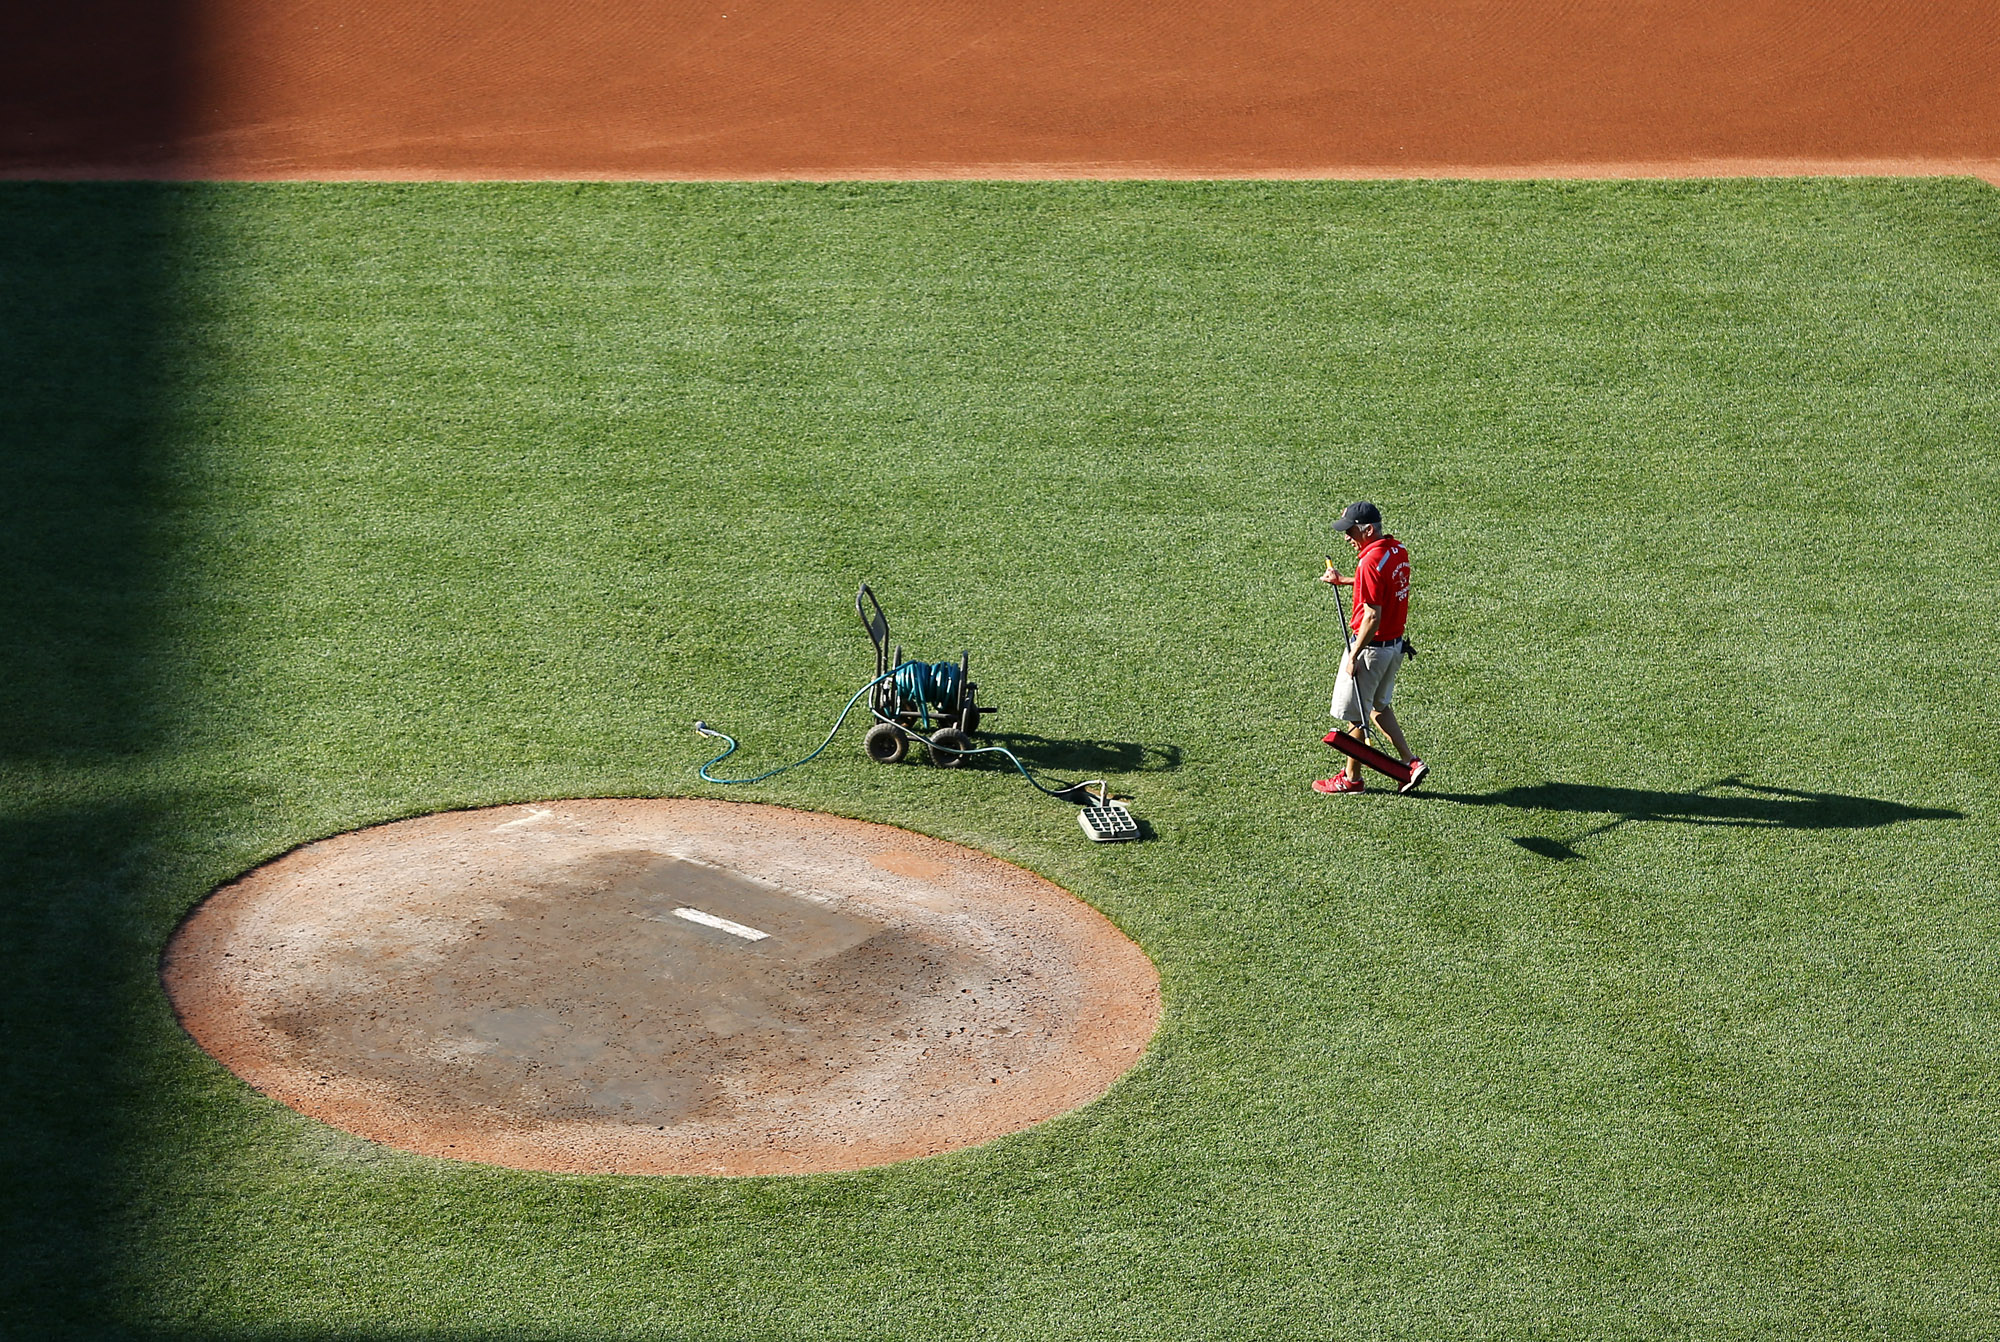 Will this member of the Fenway grounds crew take down top honors?